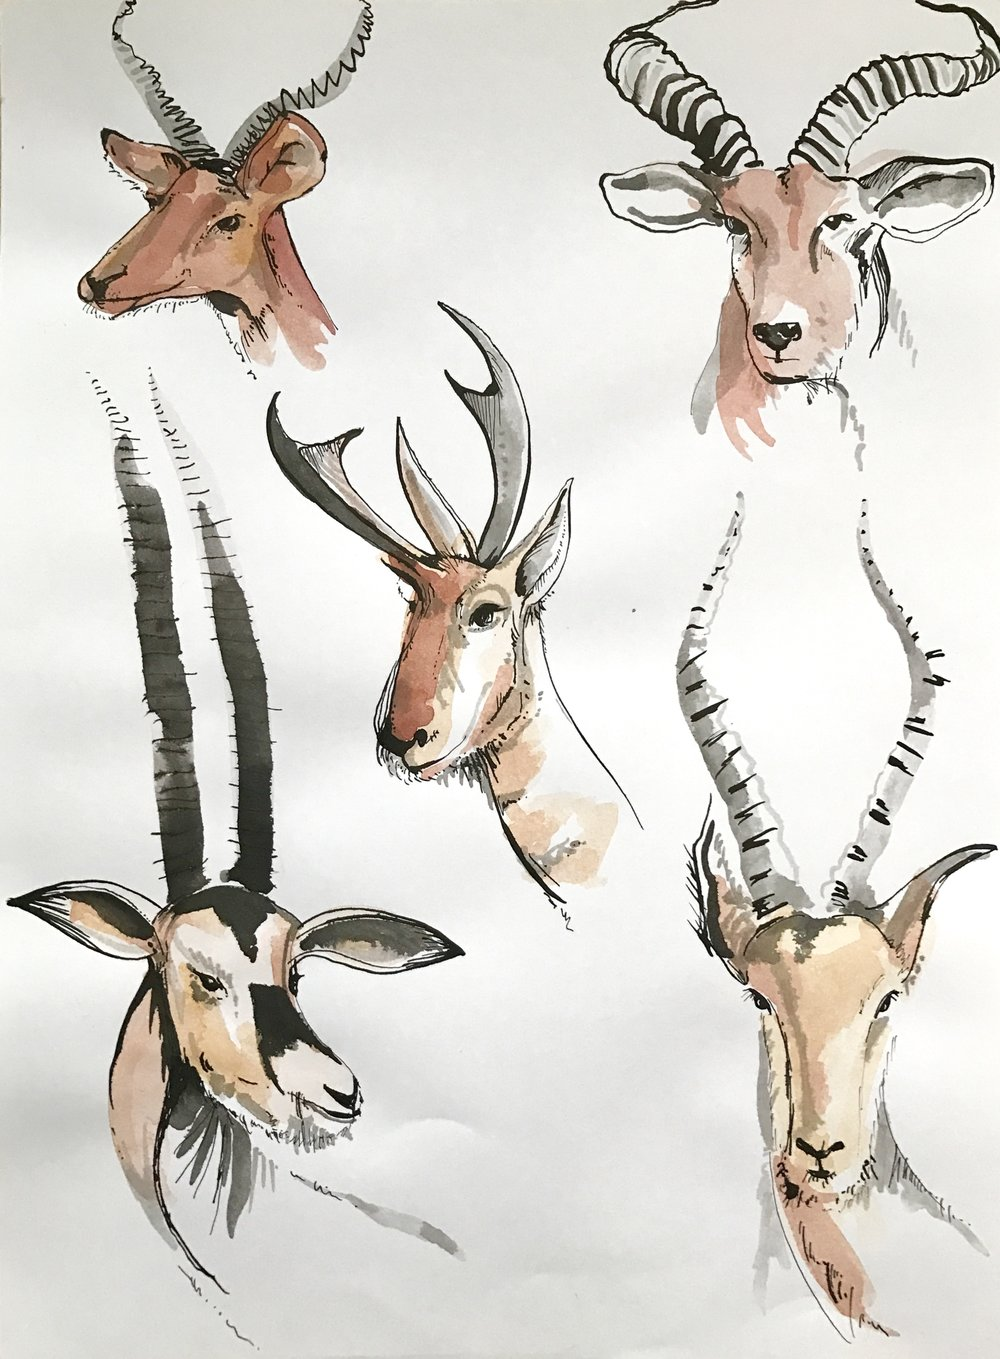 Animal head study (others available)